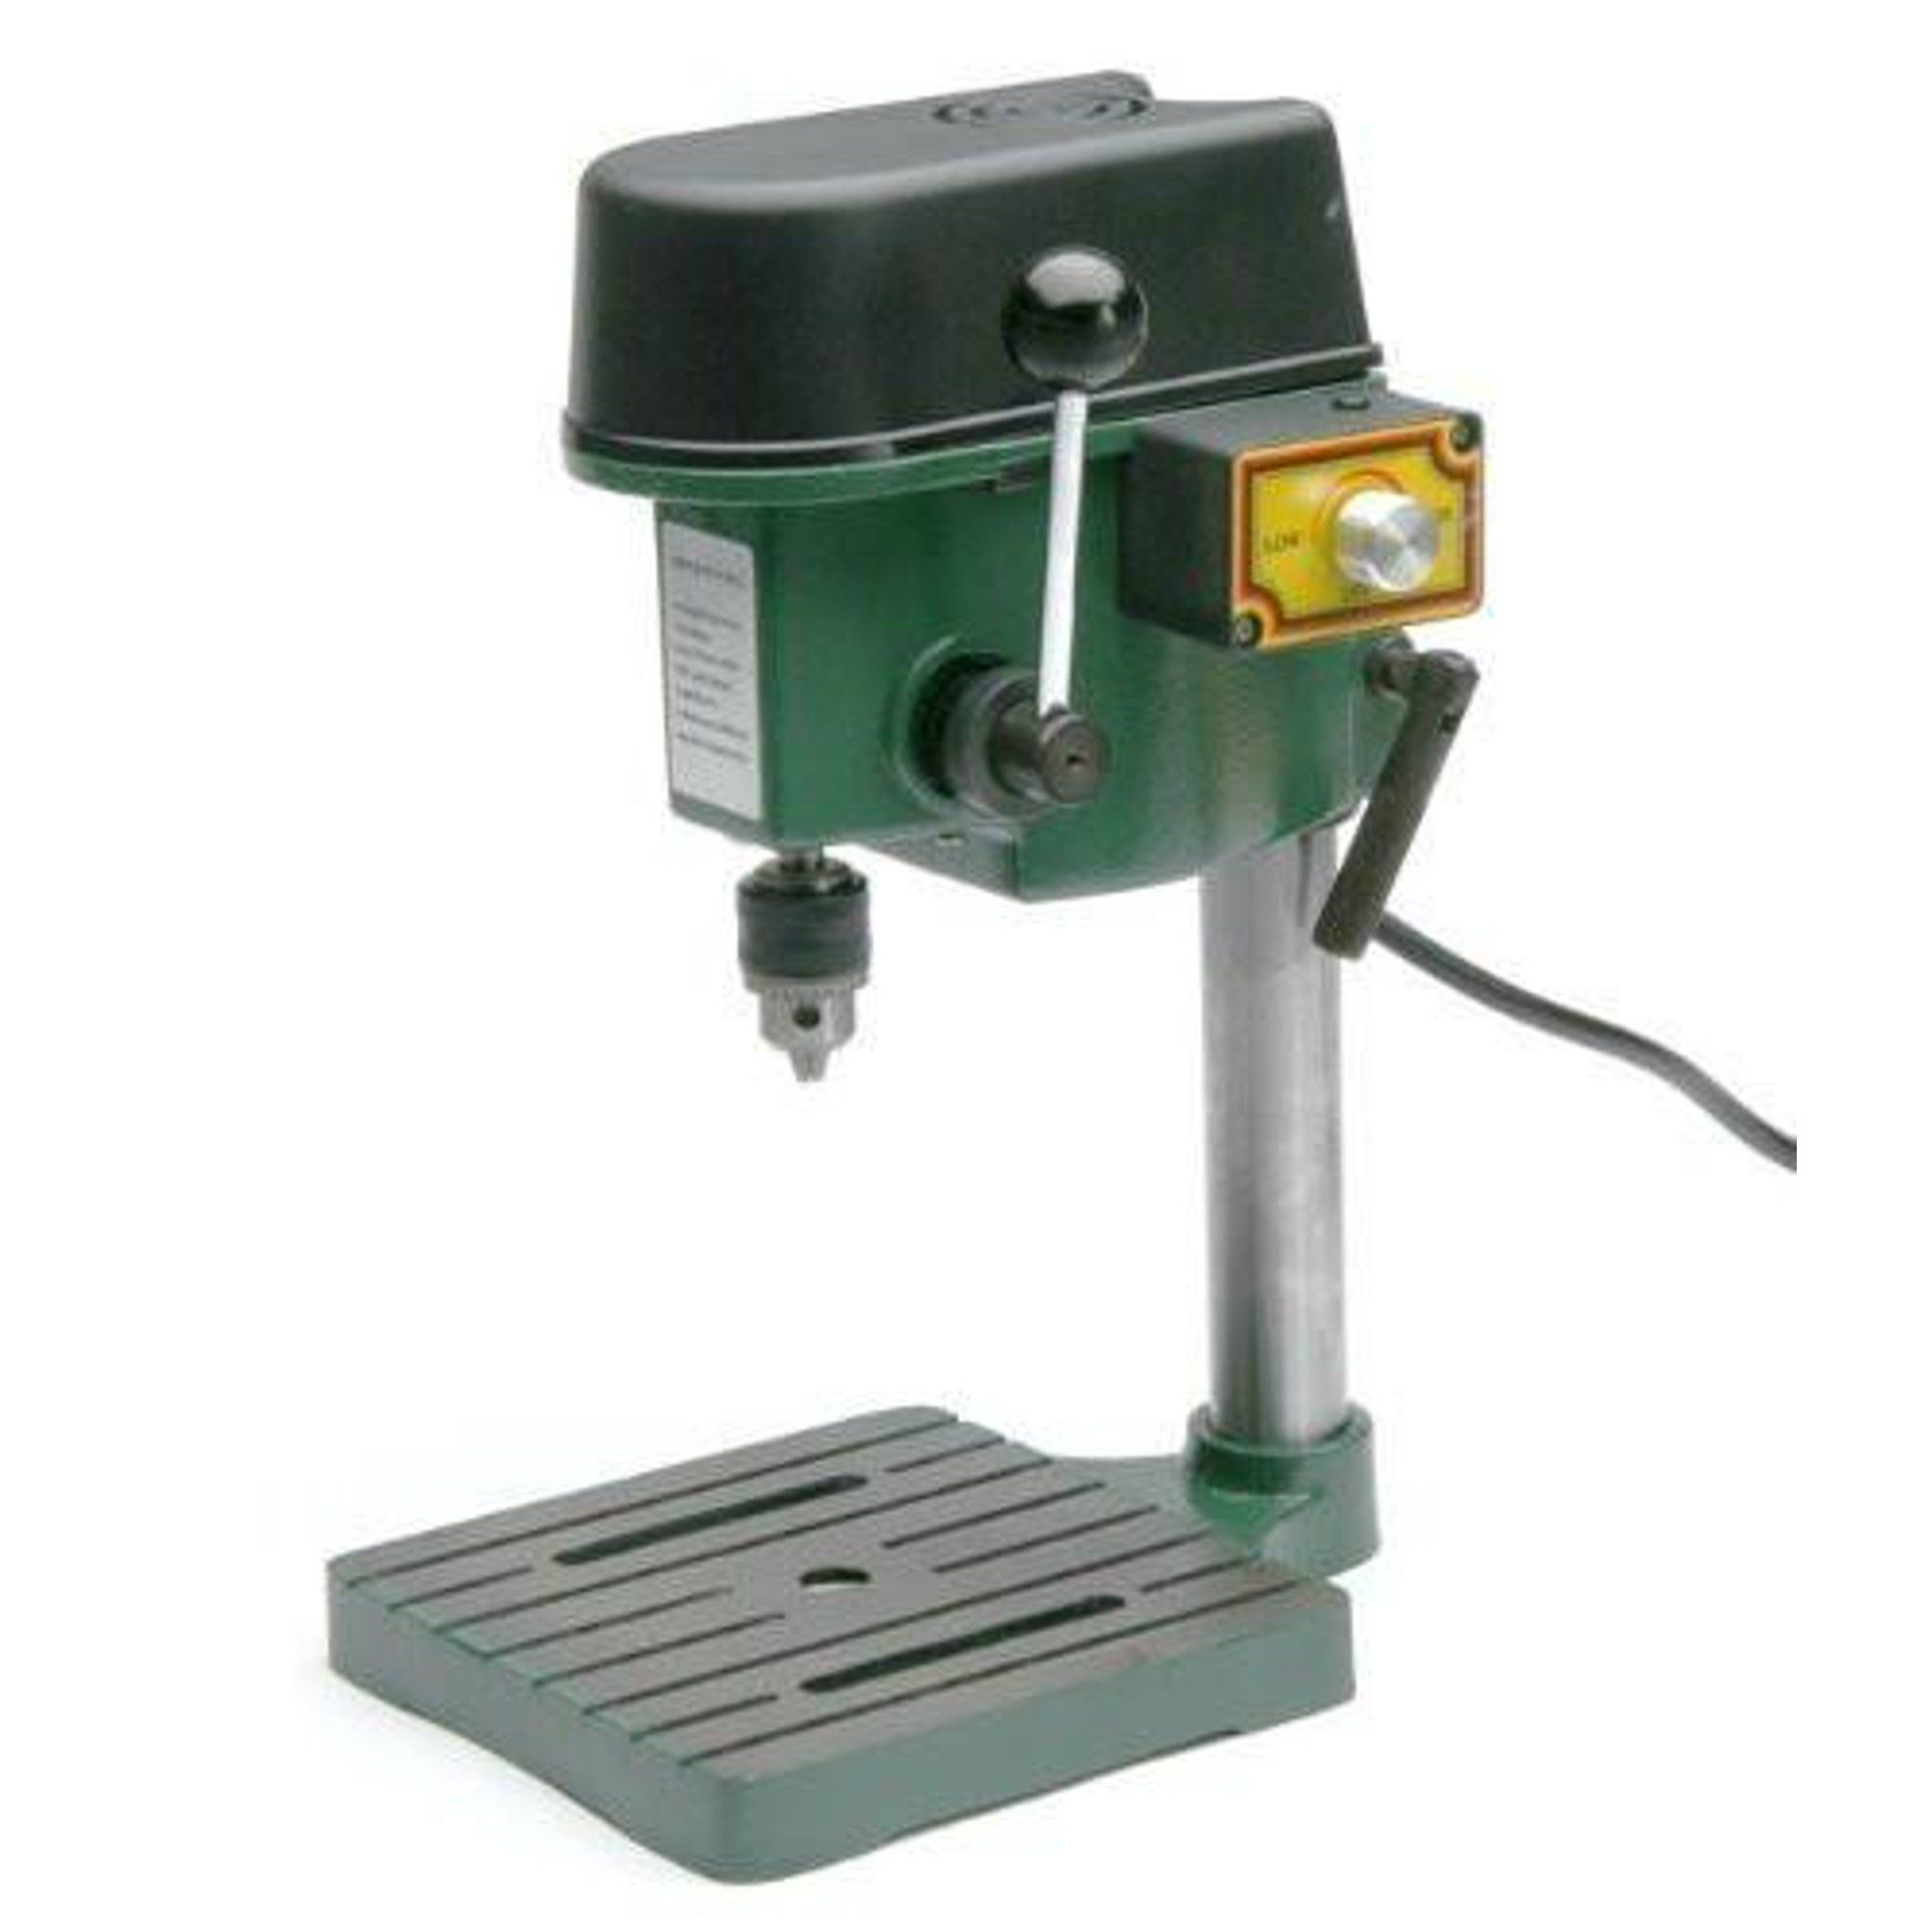 Variable Speed Mini Hobby Drill Press in